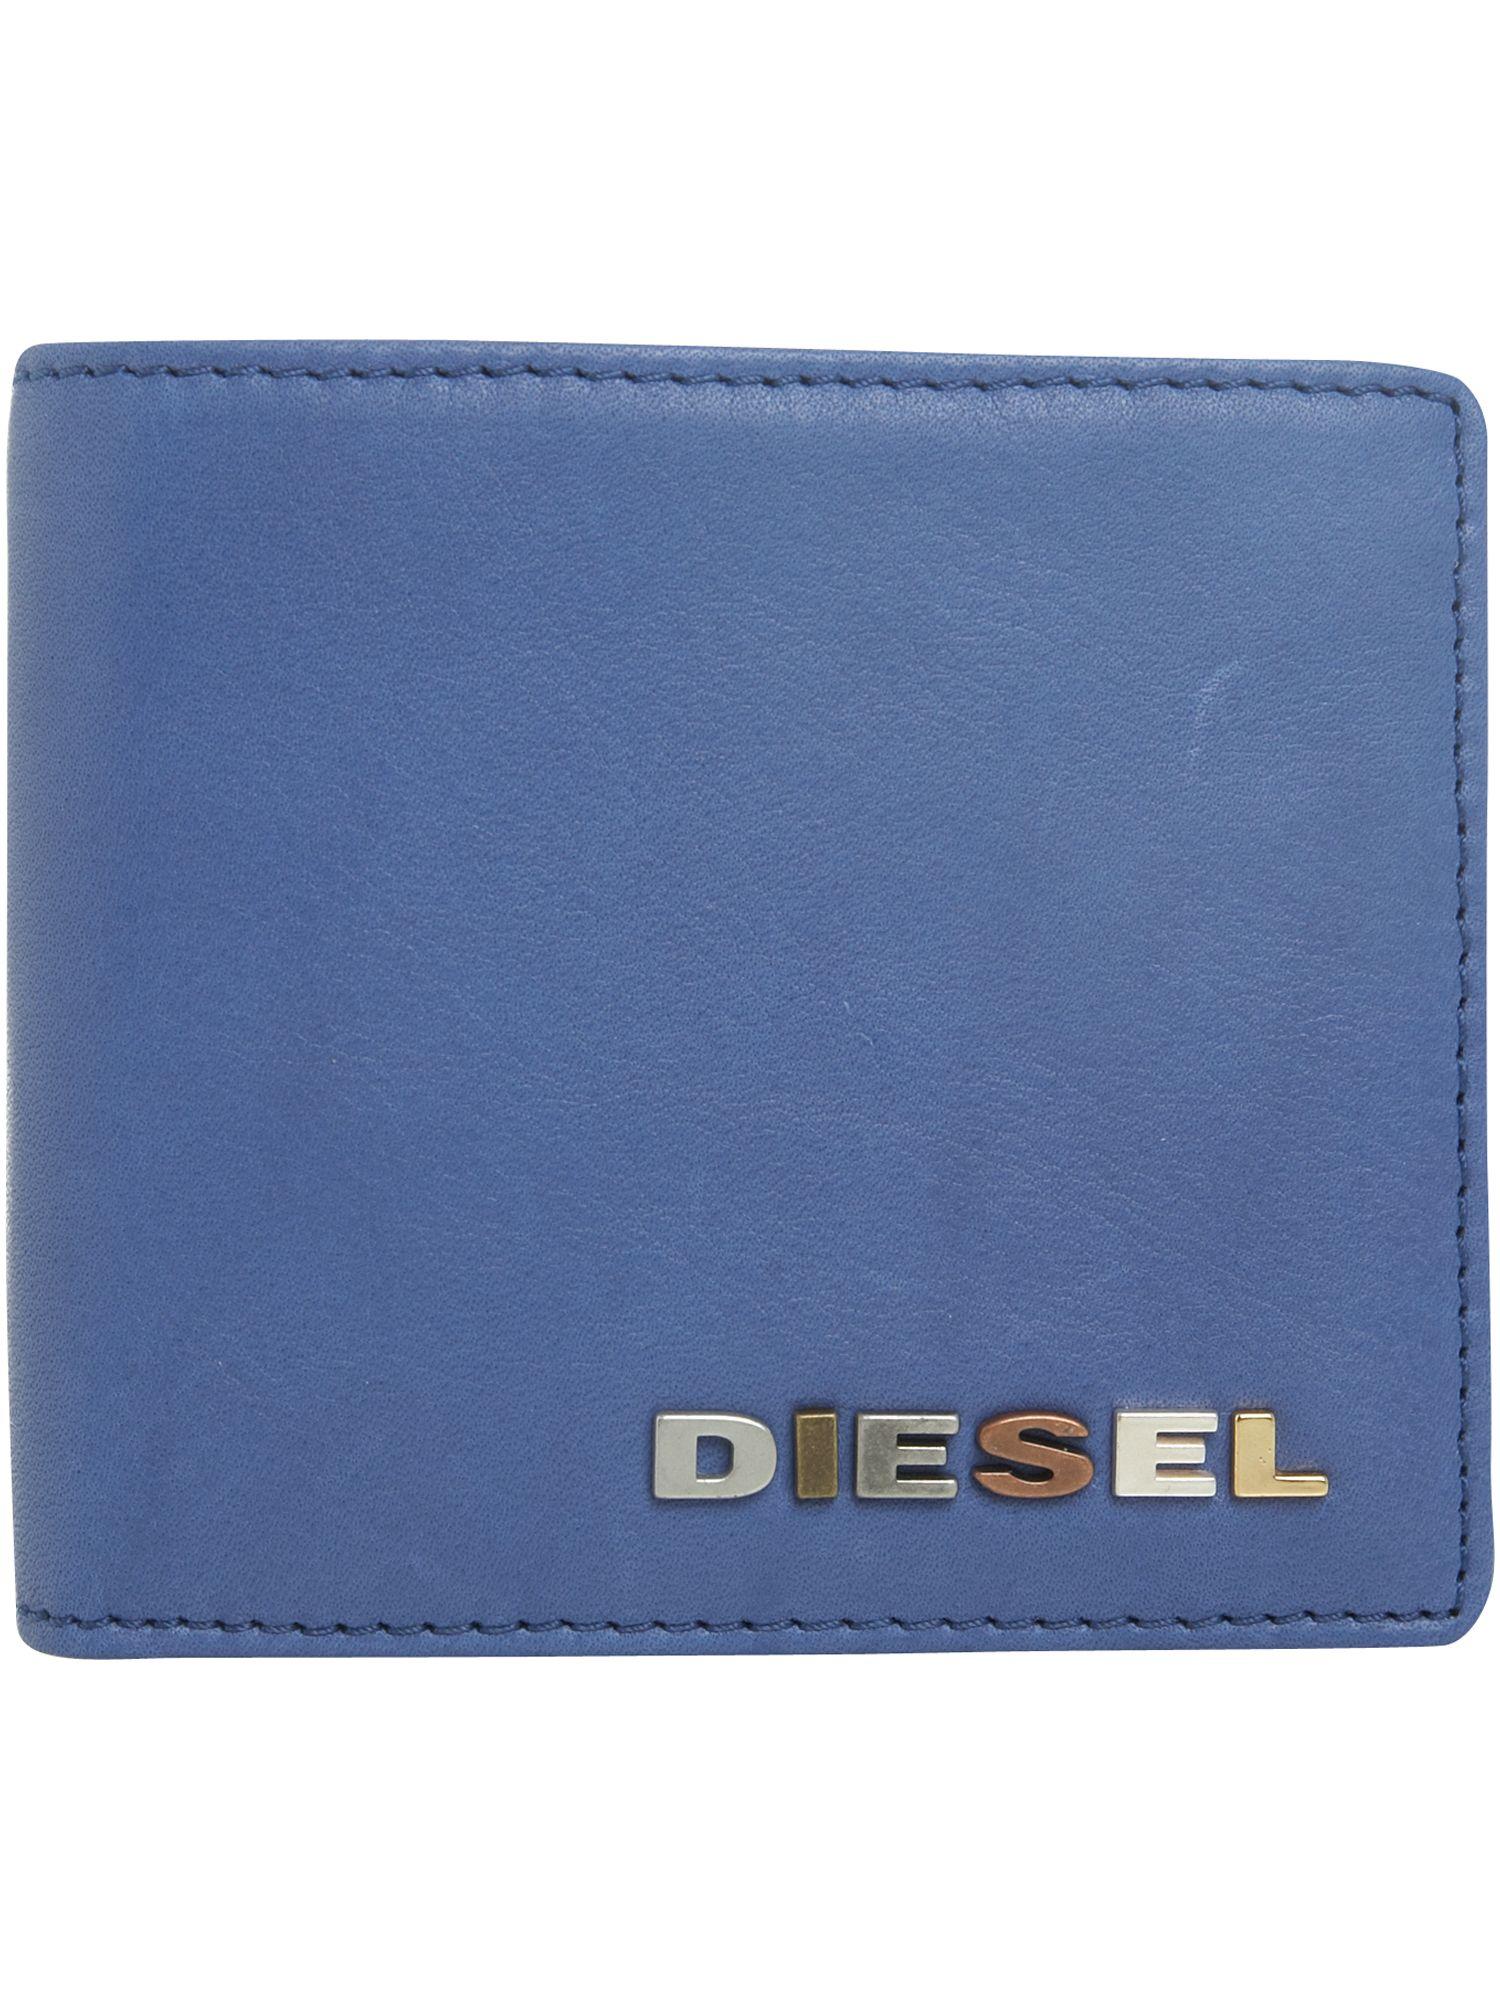 Diesel Billfold wallet with coin pocket product image